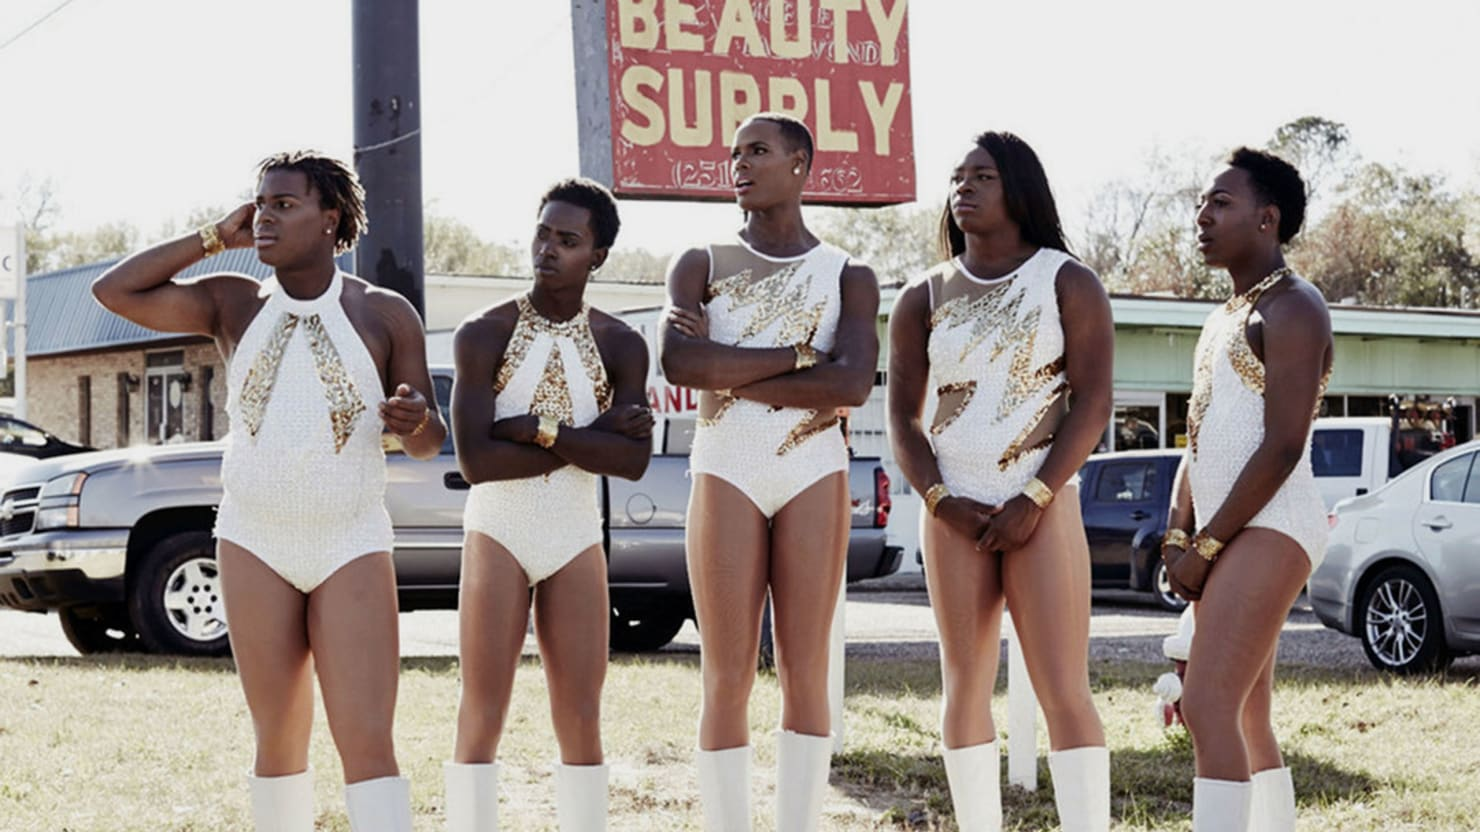 'The Prancing Elites Project': How Men Twerking in Leotards Became TV's Most Inspiring New Show